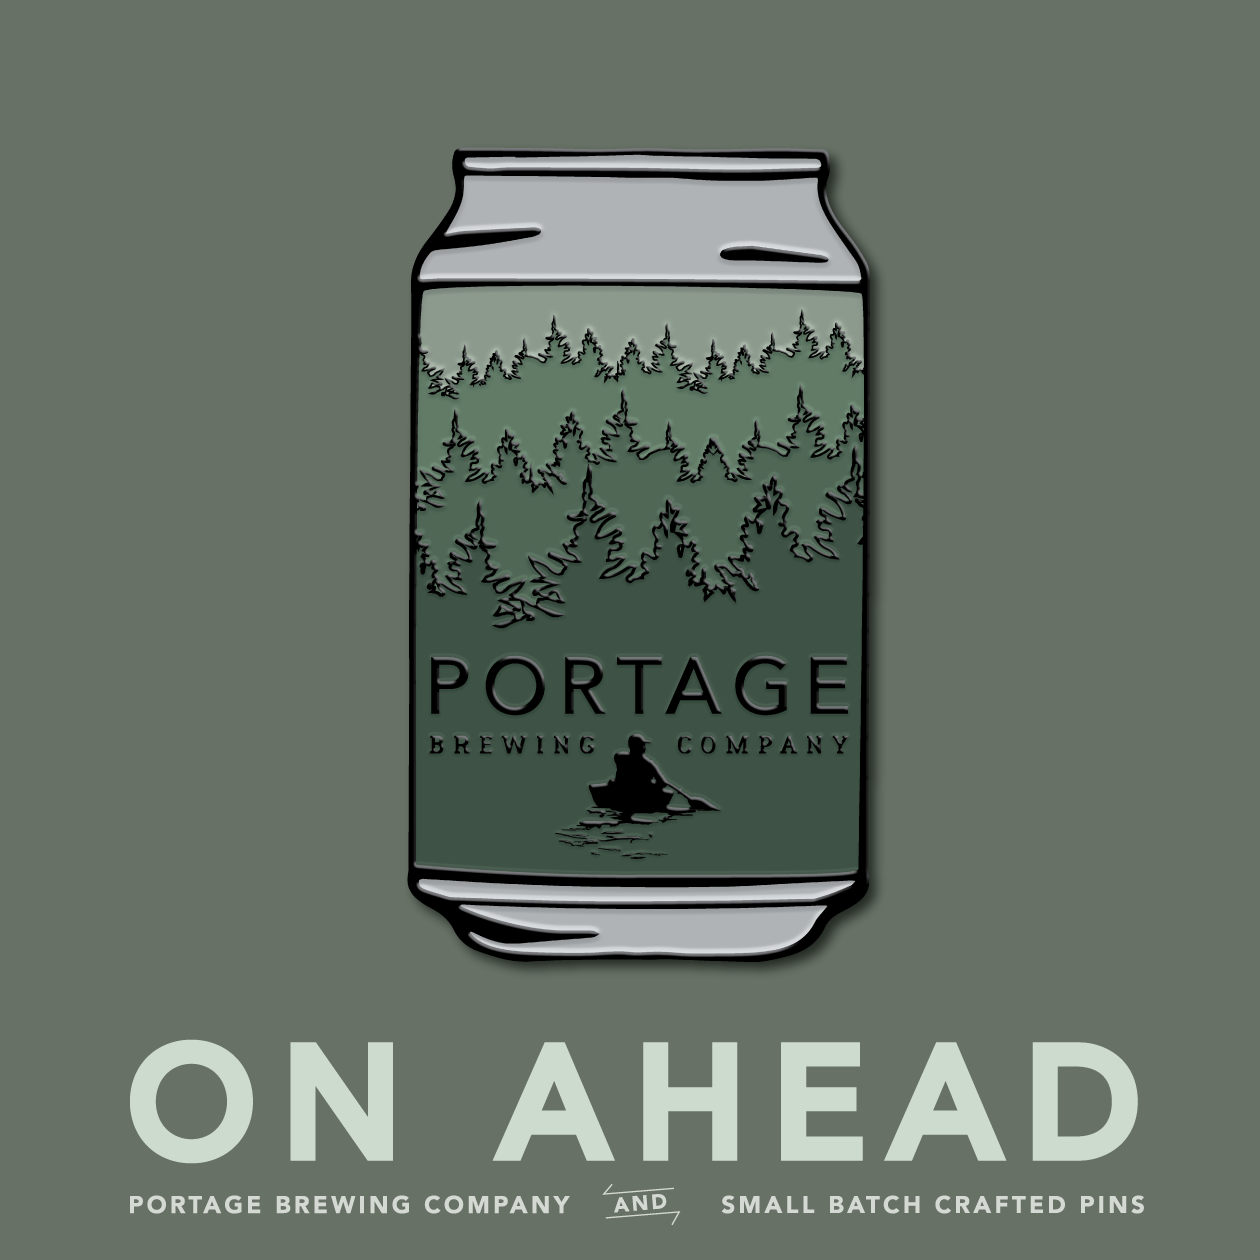 """BATCH 11 — ON AHEAD - In January of 2019 there was a catastrophic fire that destroyed Portage Brewing in Walker, Minnesota. Since then, they have rebounded with a new energy, and new plans for the future. Recently Portage launched a campaign on Indiegogo to help finance the build out of their new facility.We're incredibly proud to help play a part in this crowdfunding project. We worked directly with our friends at Portage to come up with an enamel pin design to help represent where Portage came from - and more importantly where Portage is going. Inspired by their last crowler release before the fire, this 1.5"""" tall enamel pin features the Chippewa National Forest treeline, and the iconic Portage Brewing logo.We know Portage will be back, and better than ever. But they need your help. The link to pre-order the pin is below, all proceeds go directly to Portage to help them rebuild their brewery in Walker, Minnesota.On Ahead: Portage Collab Pin"""